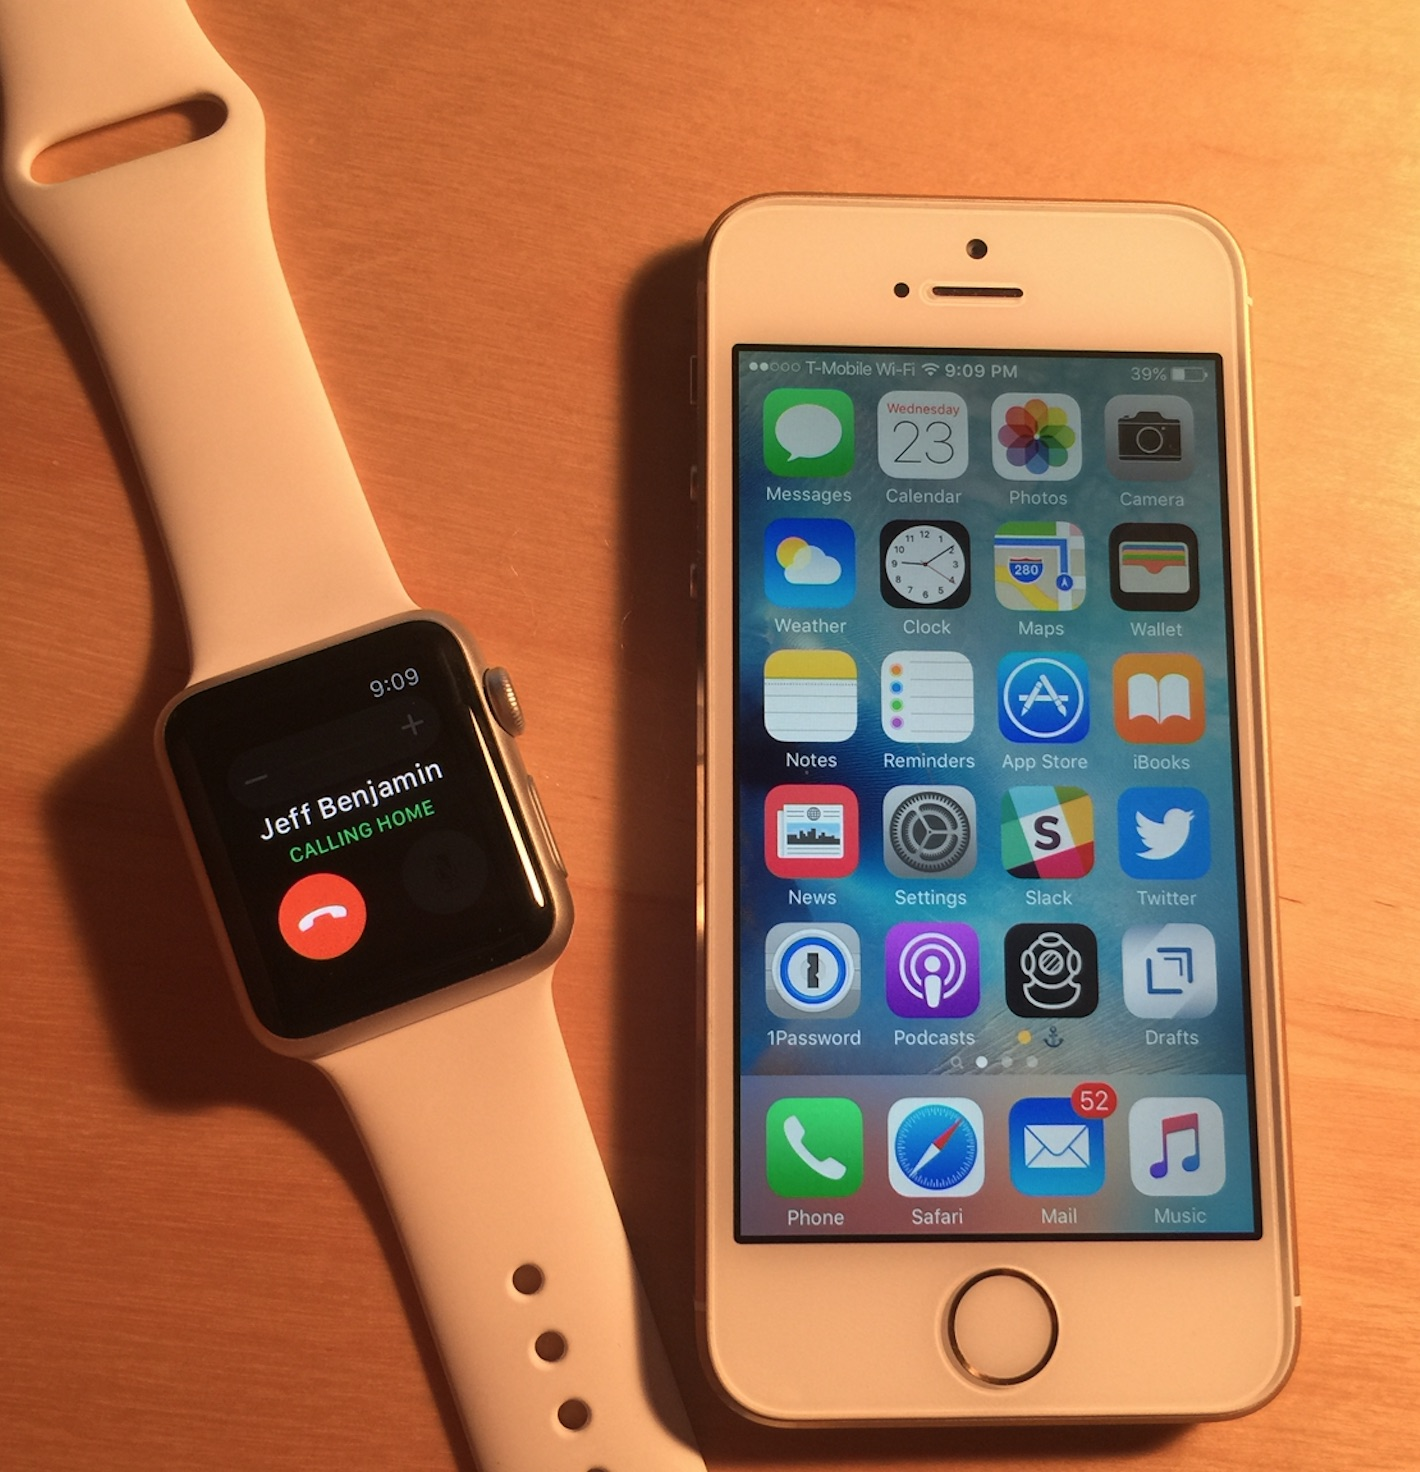 Wi-Fi call watchOS 2 no Bluetooth